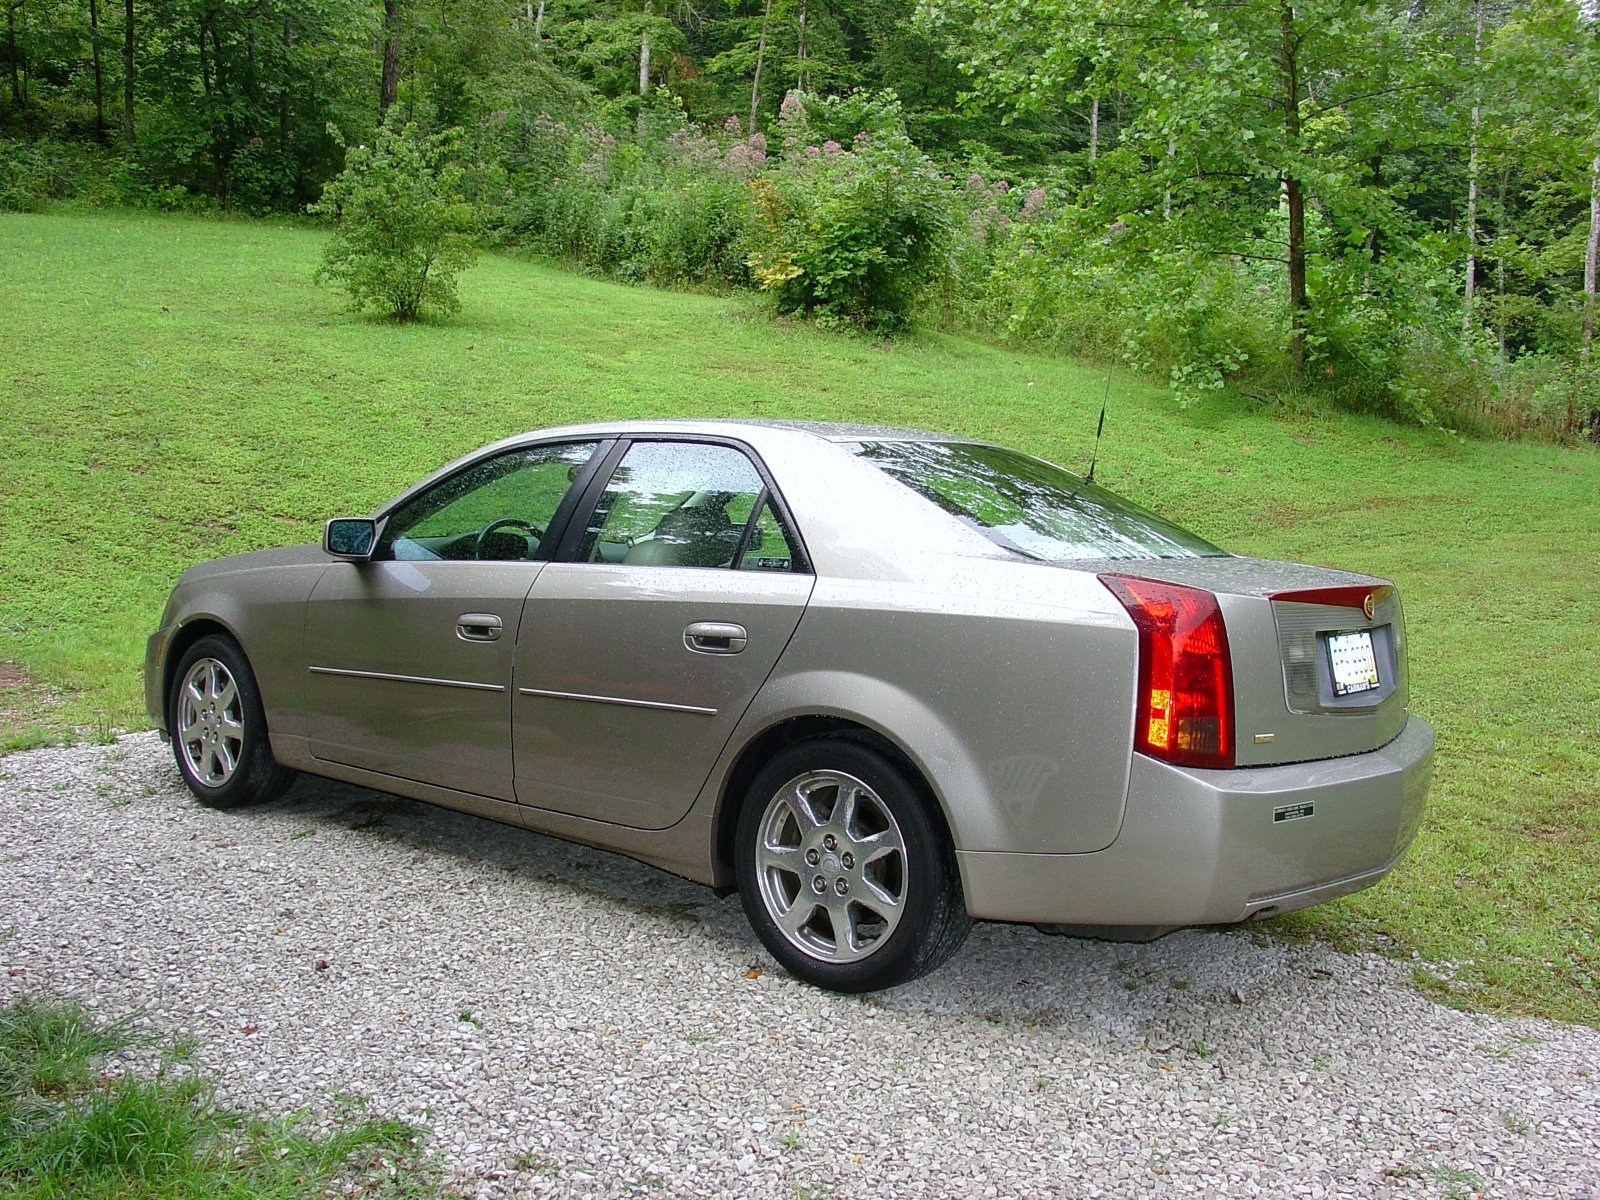 Cadillac Cts Questions I Have New Condition 2003 Cadillac Cts